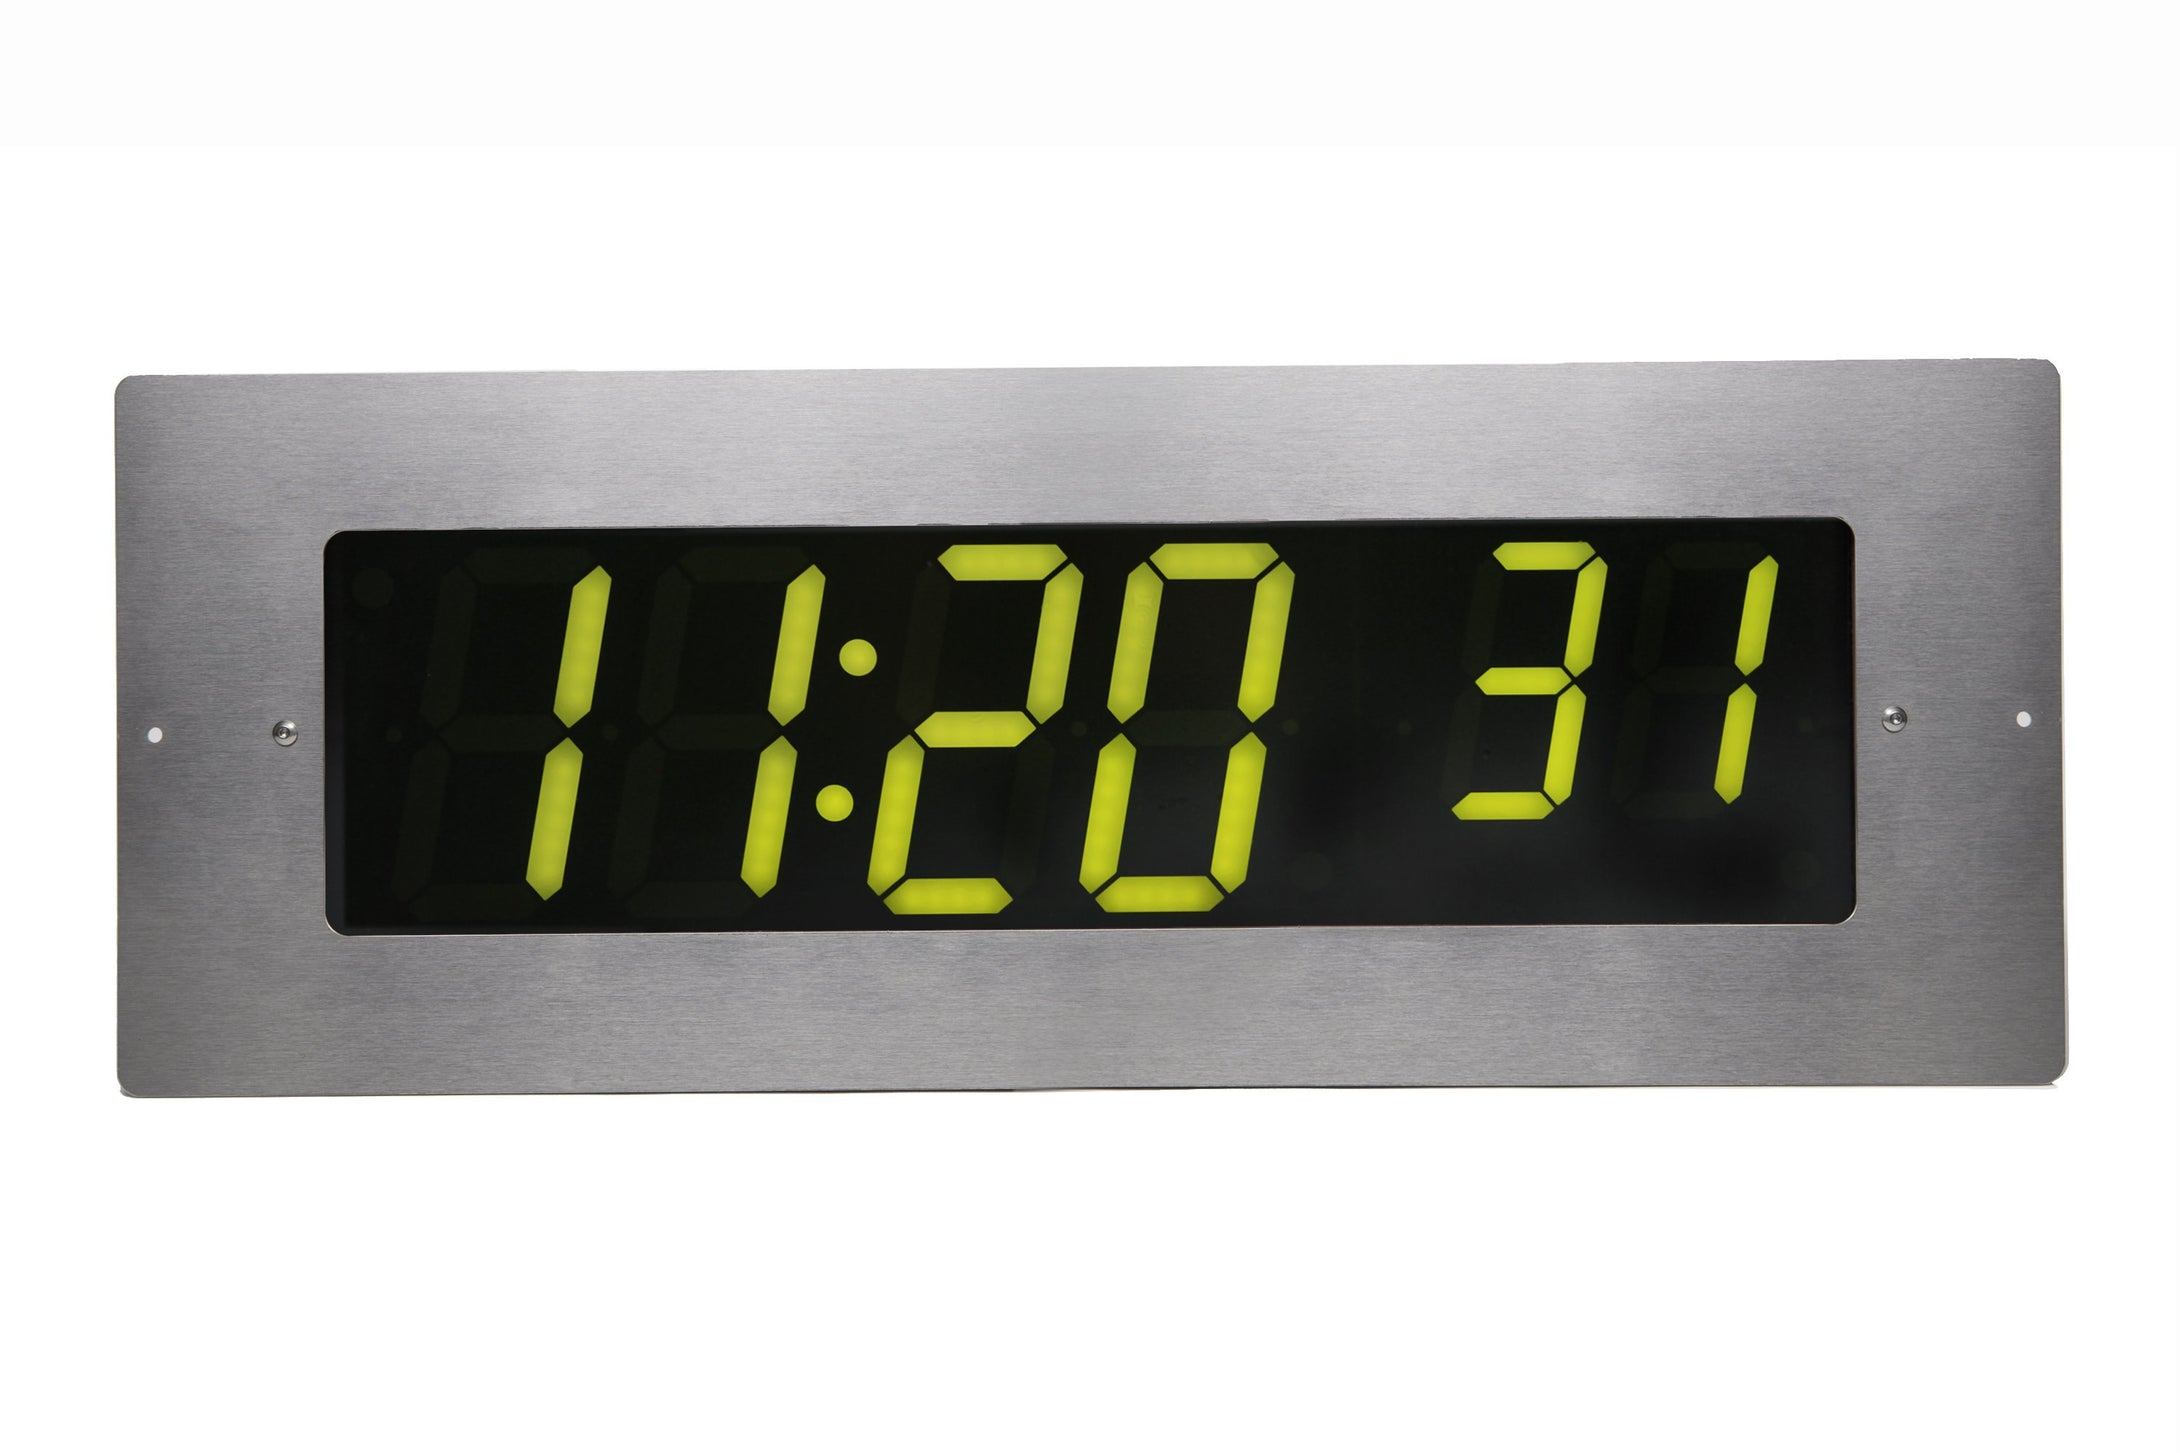 6 Digit PoE Clock, Green LED, Stainless Steel Flush Mount Faceplate